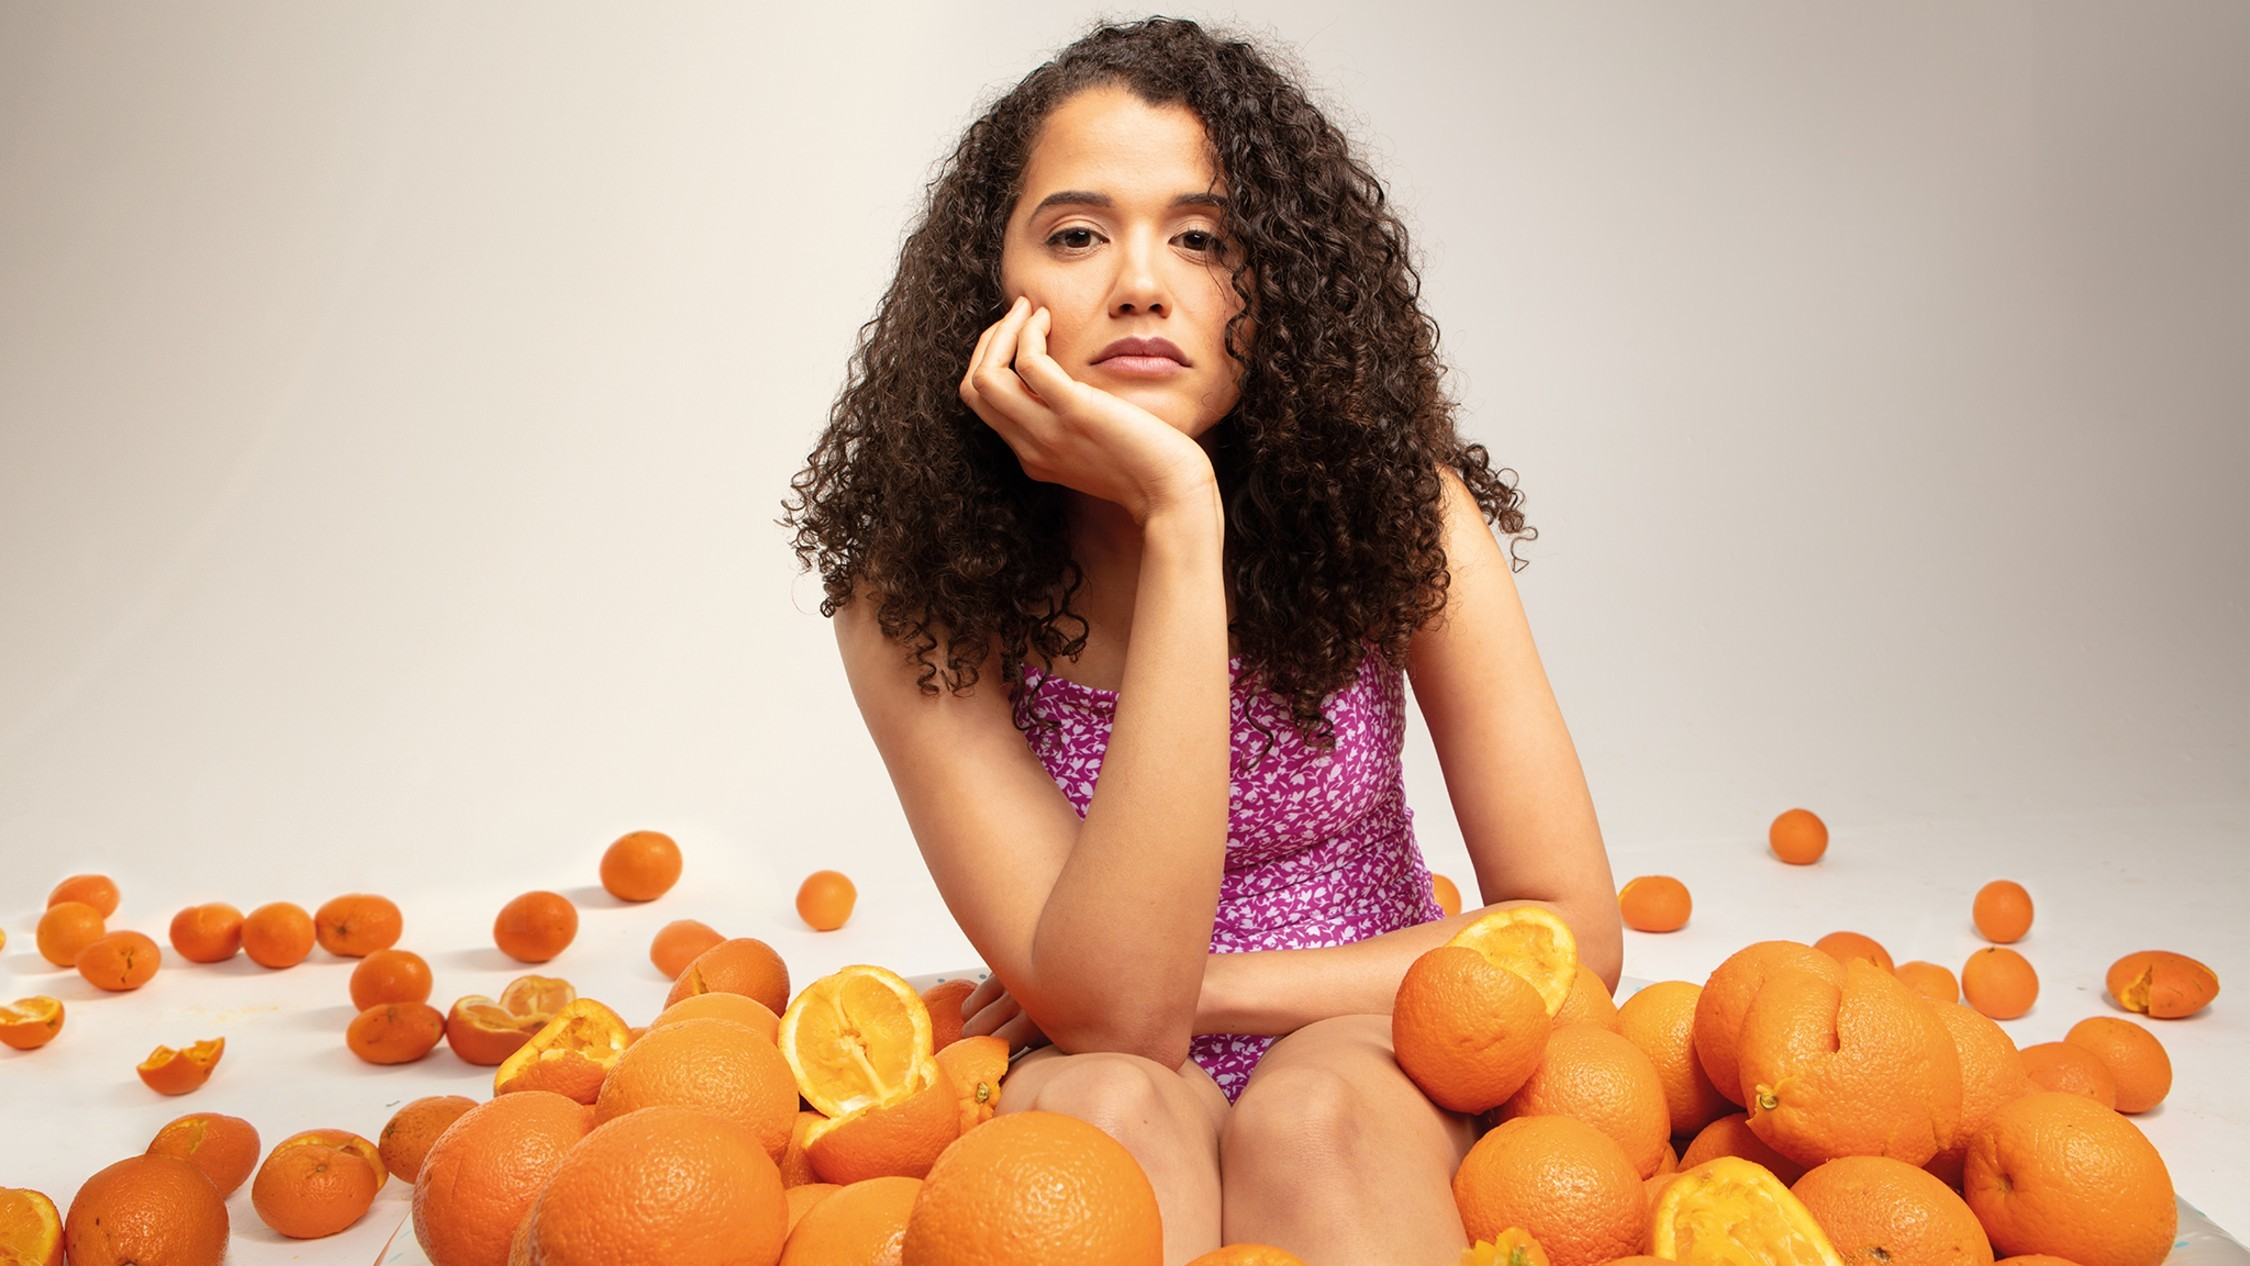 A woman in a pink dress sits in a pile of oranges, some cut in half